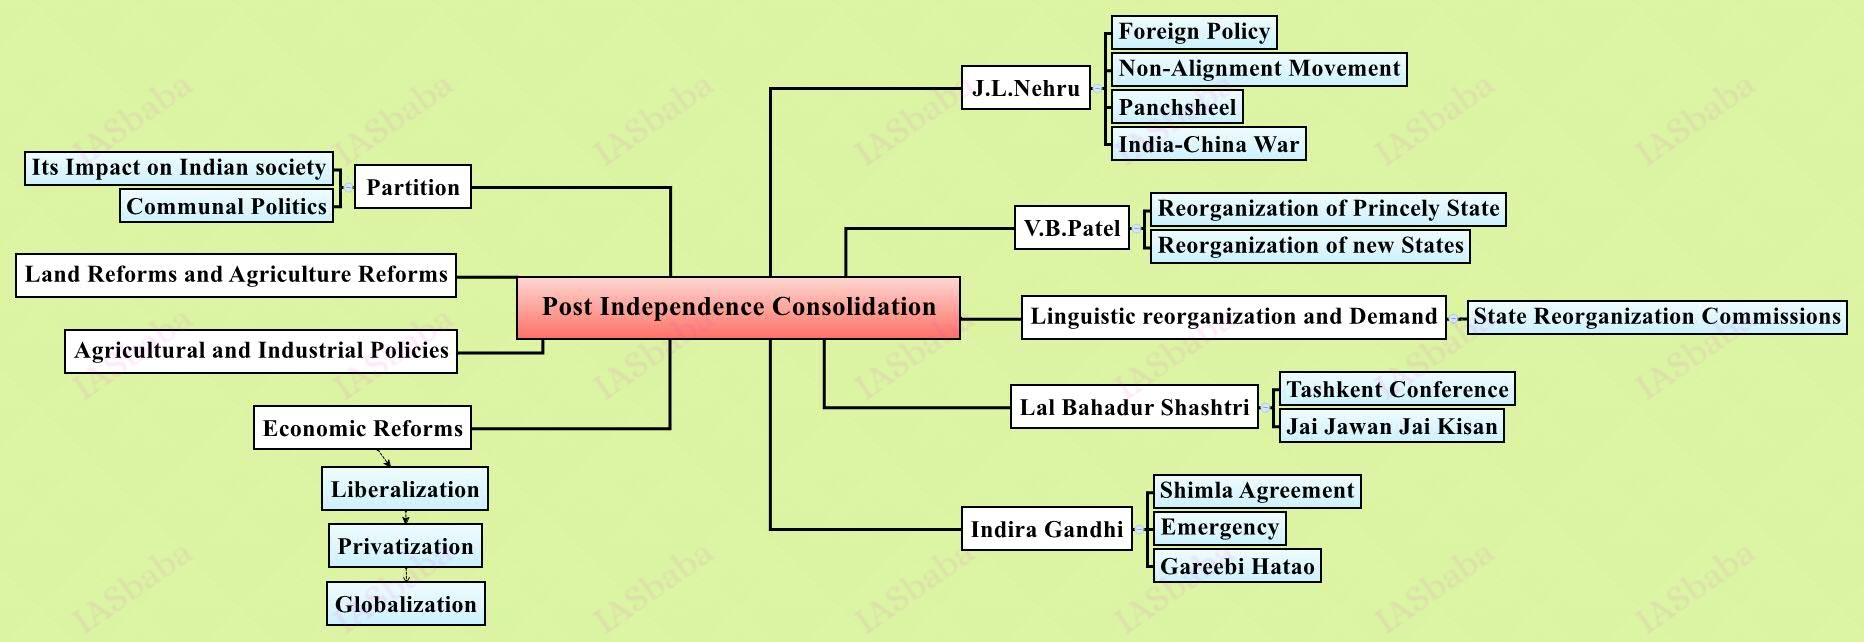 Post-Independence-Consolidation